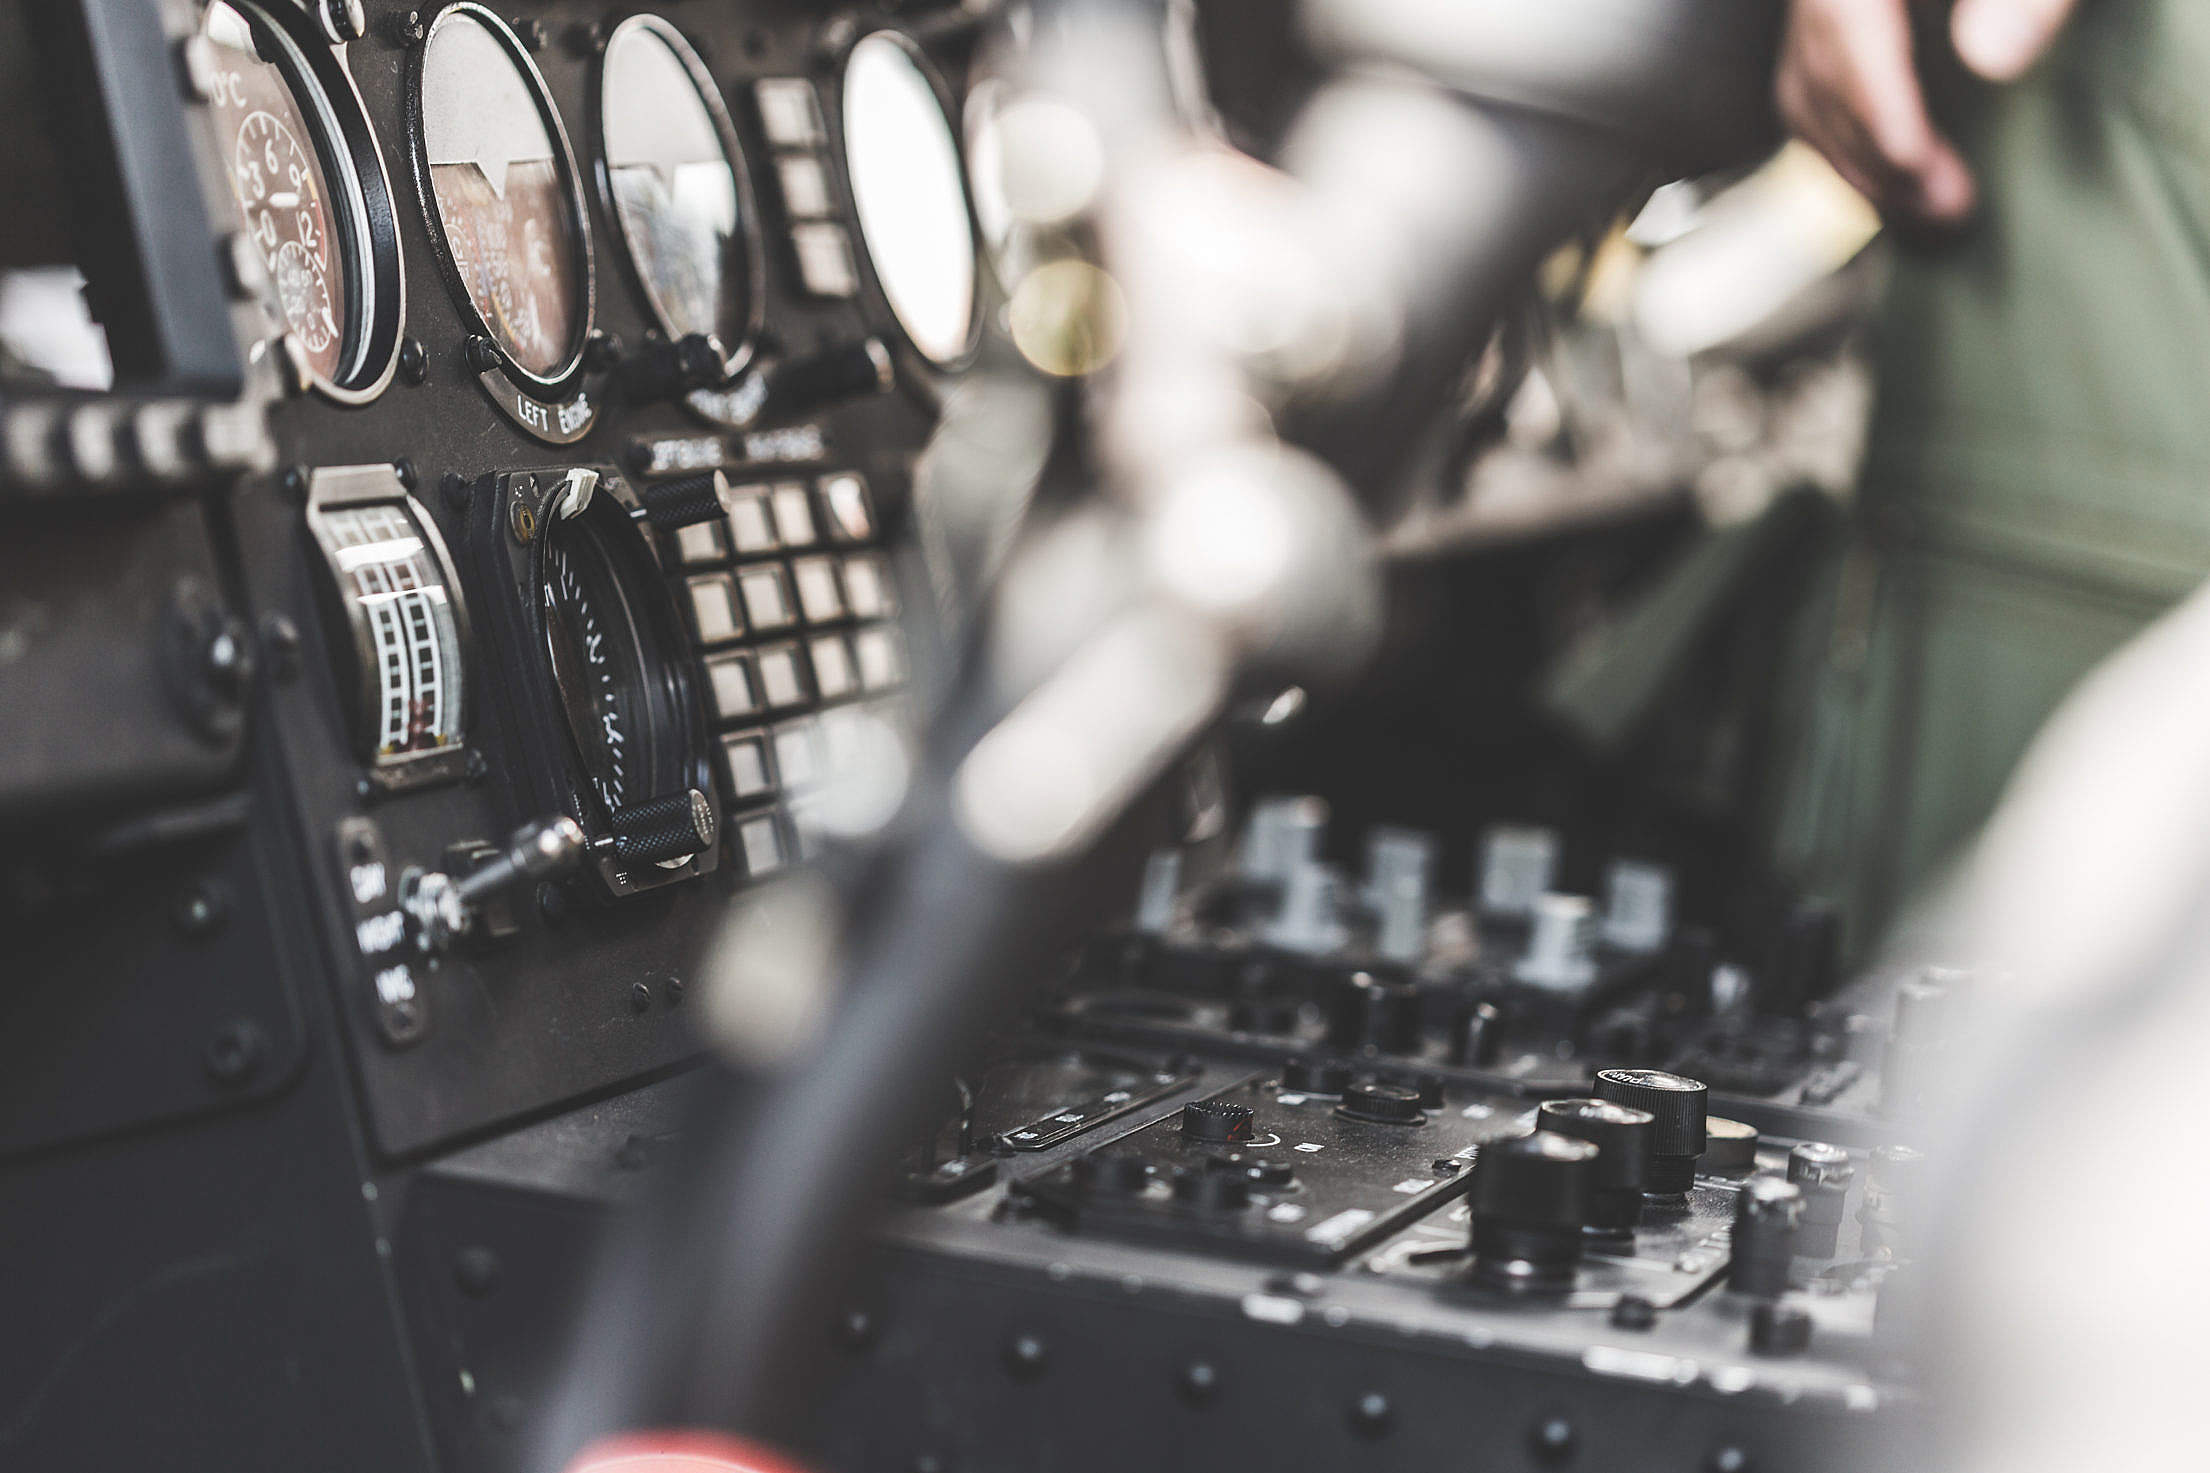 Army Helicopter Cockpit Dashboard Free Stock Photo